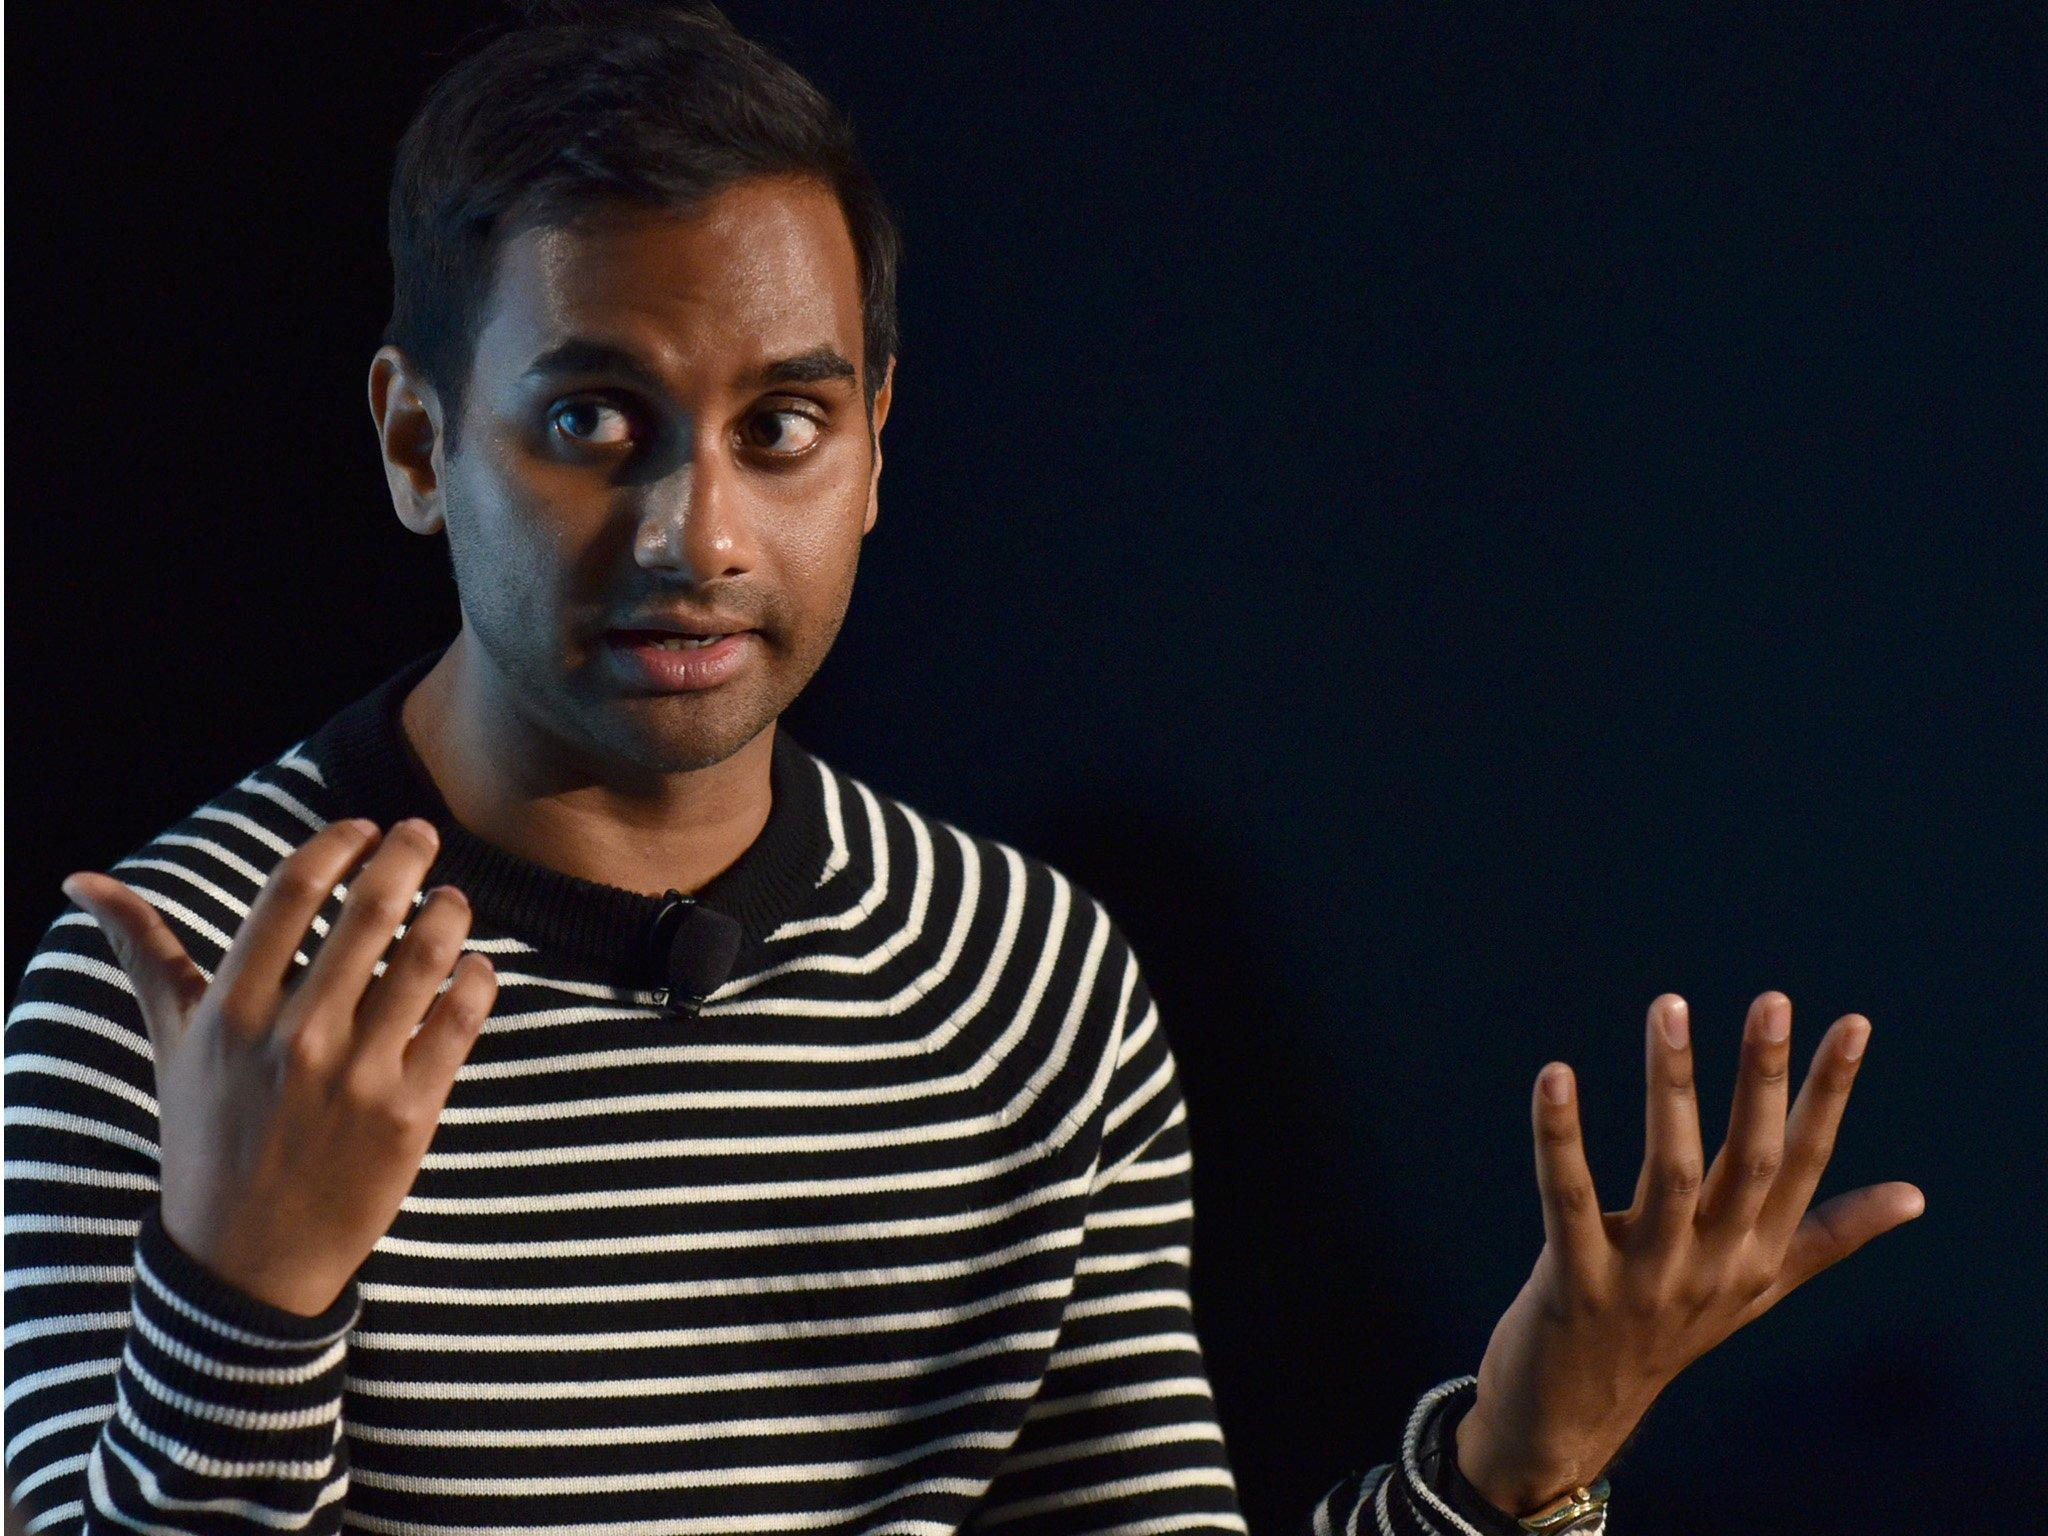 Aziz Ansari - latest news, breaking stories and comment - The ...